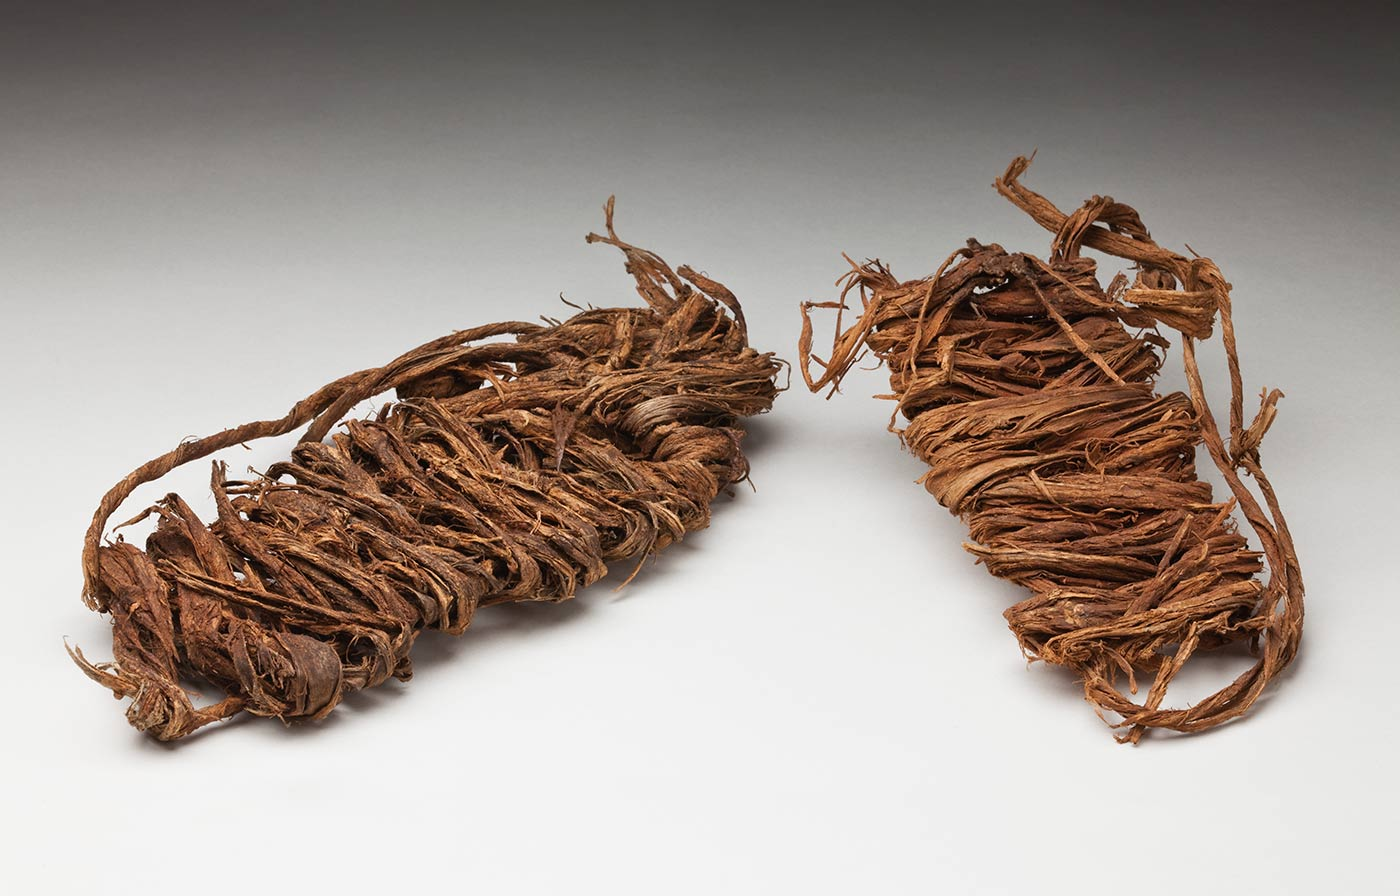 A pair of undyed bark sandals made from thick bark string. The pair have a piece of jute string tied around them, keeping them together. - click to view larger image